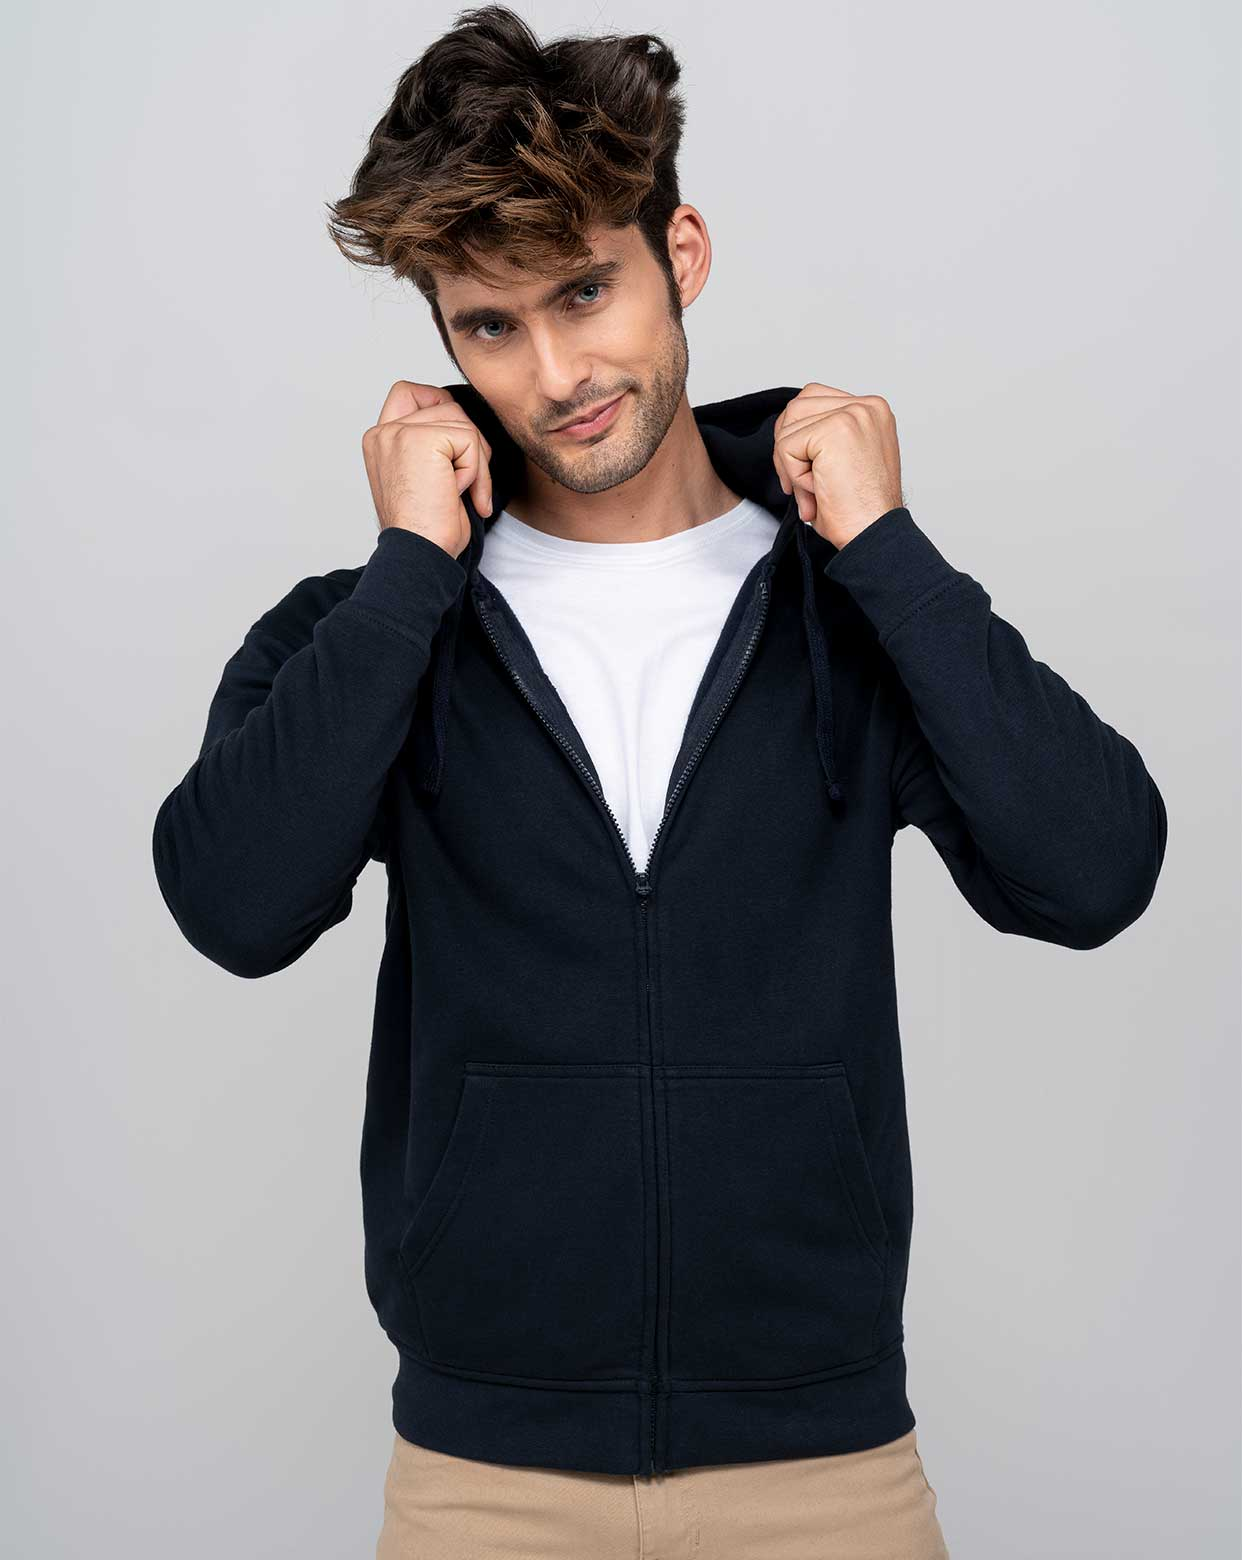 Hooded CVC Sweatshirt  - SWHOOD275